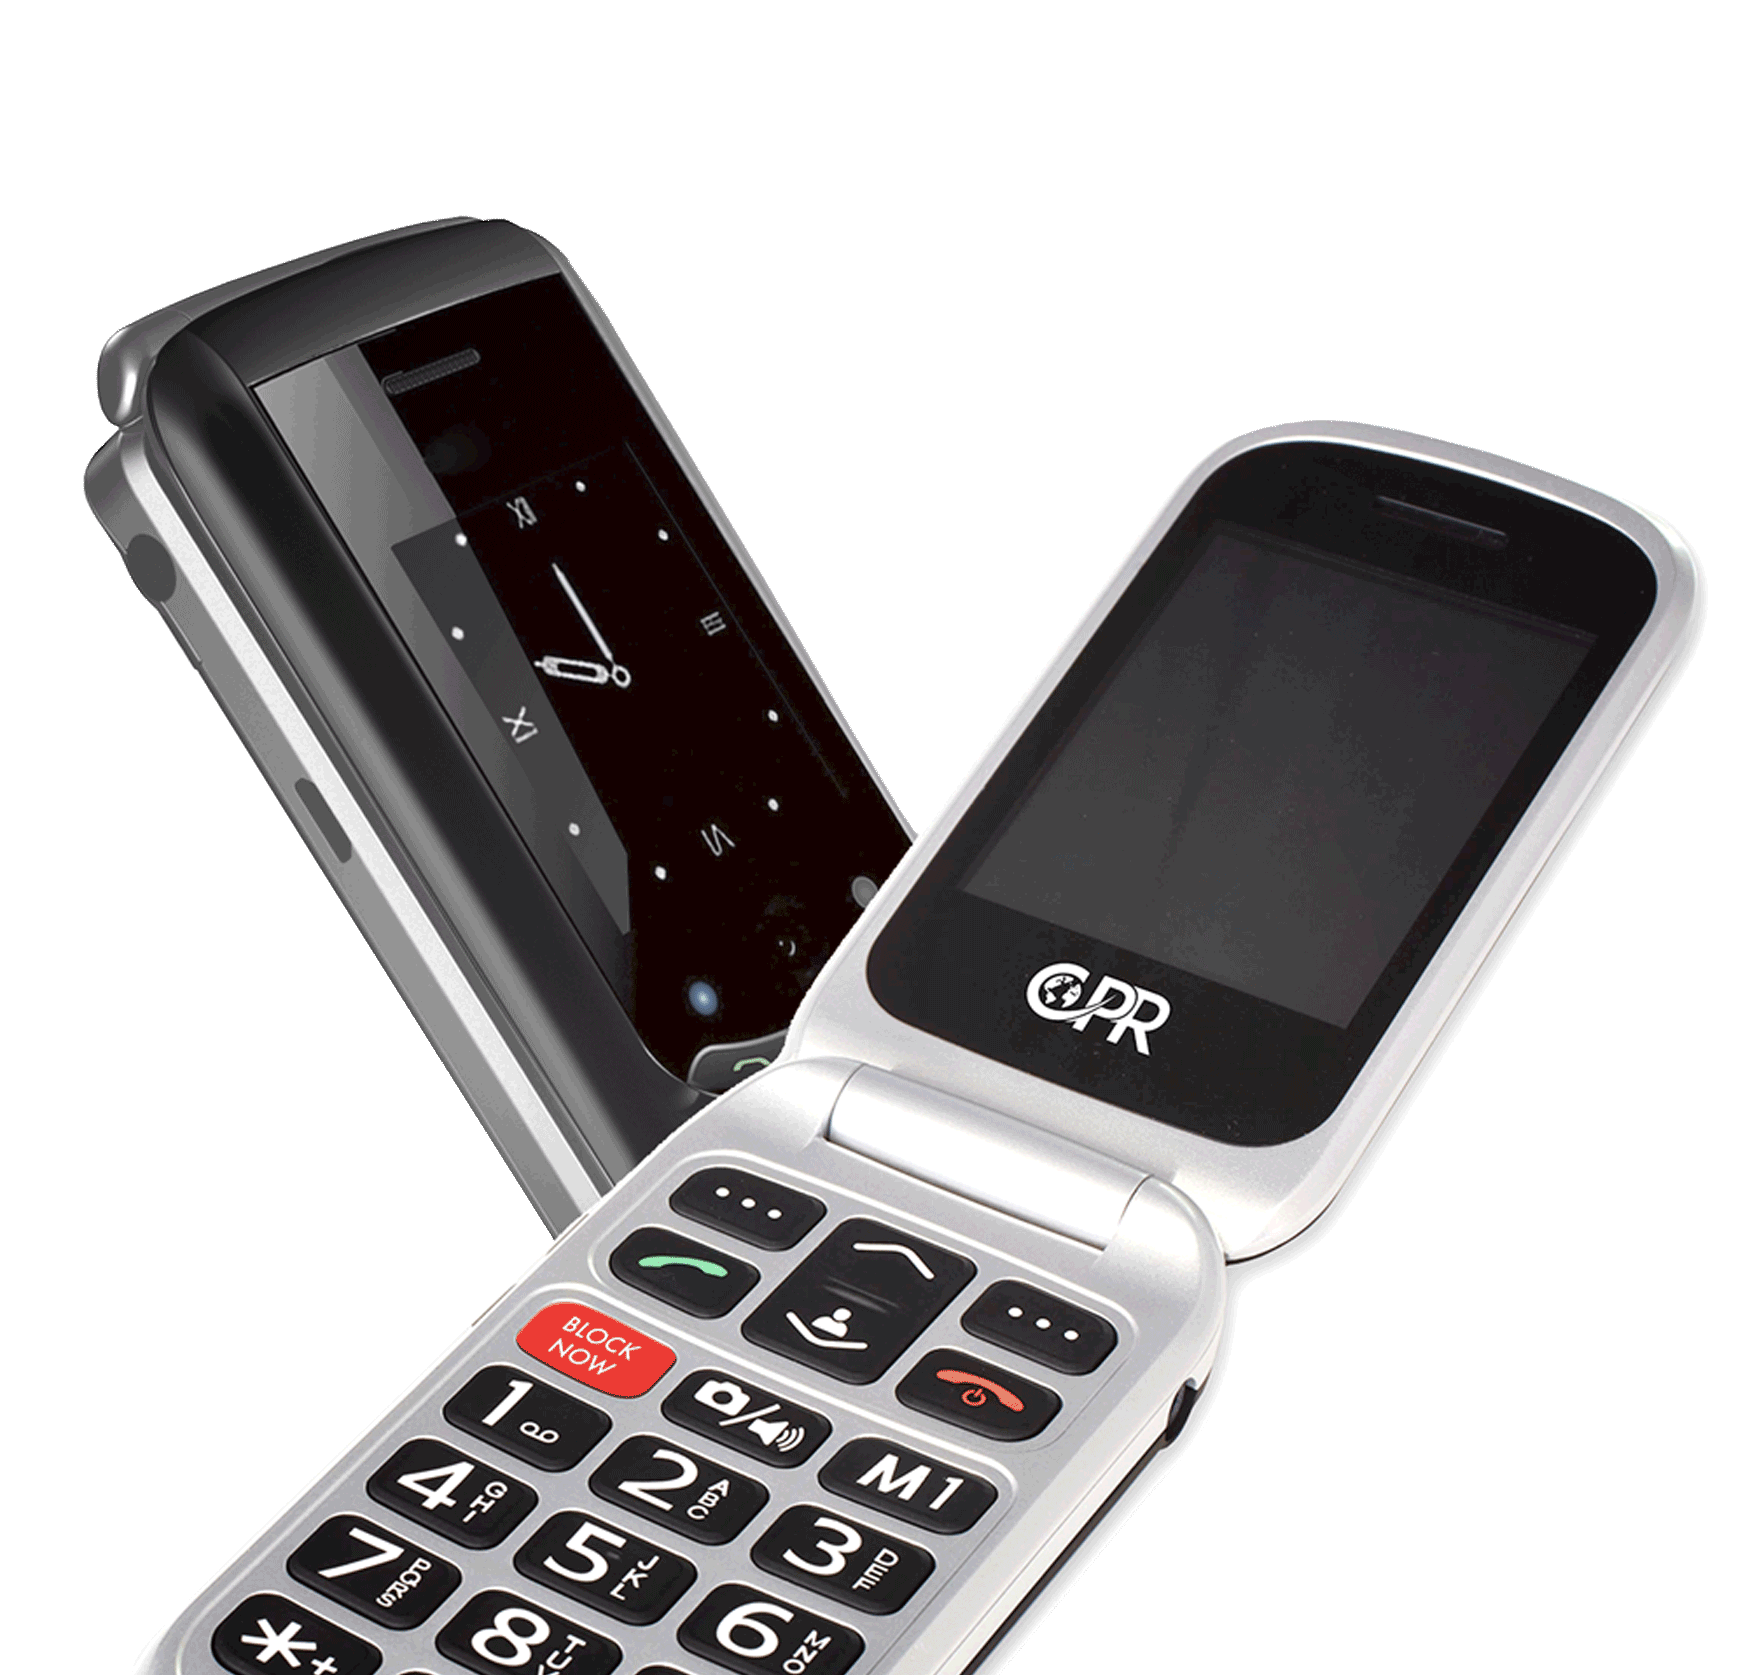 CPR CS900 mobile with call blocker